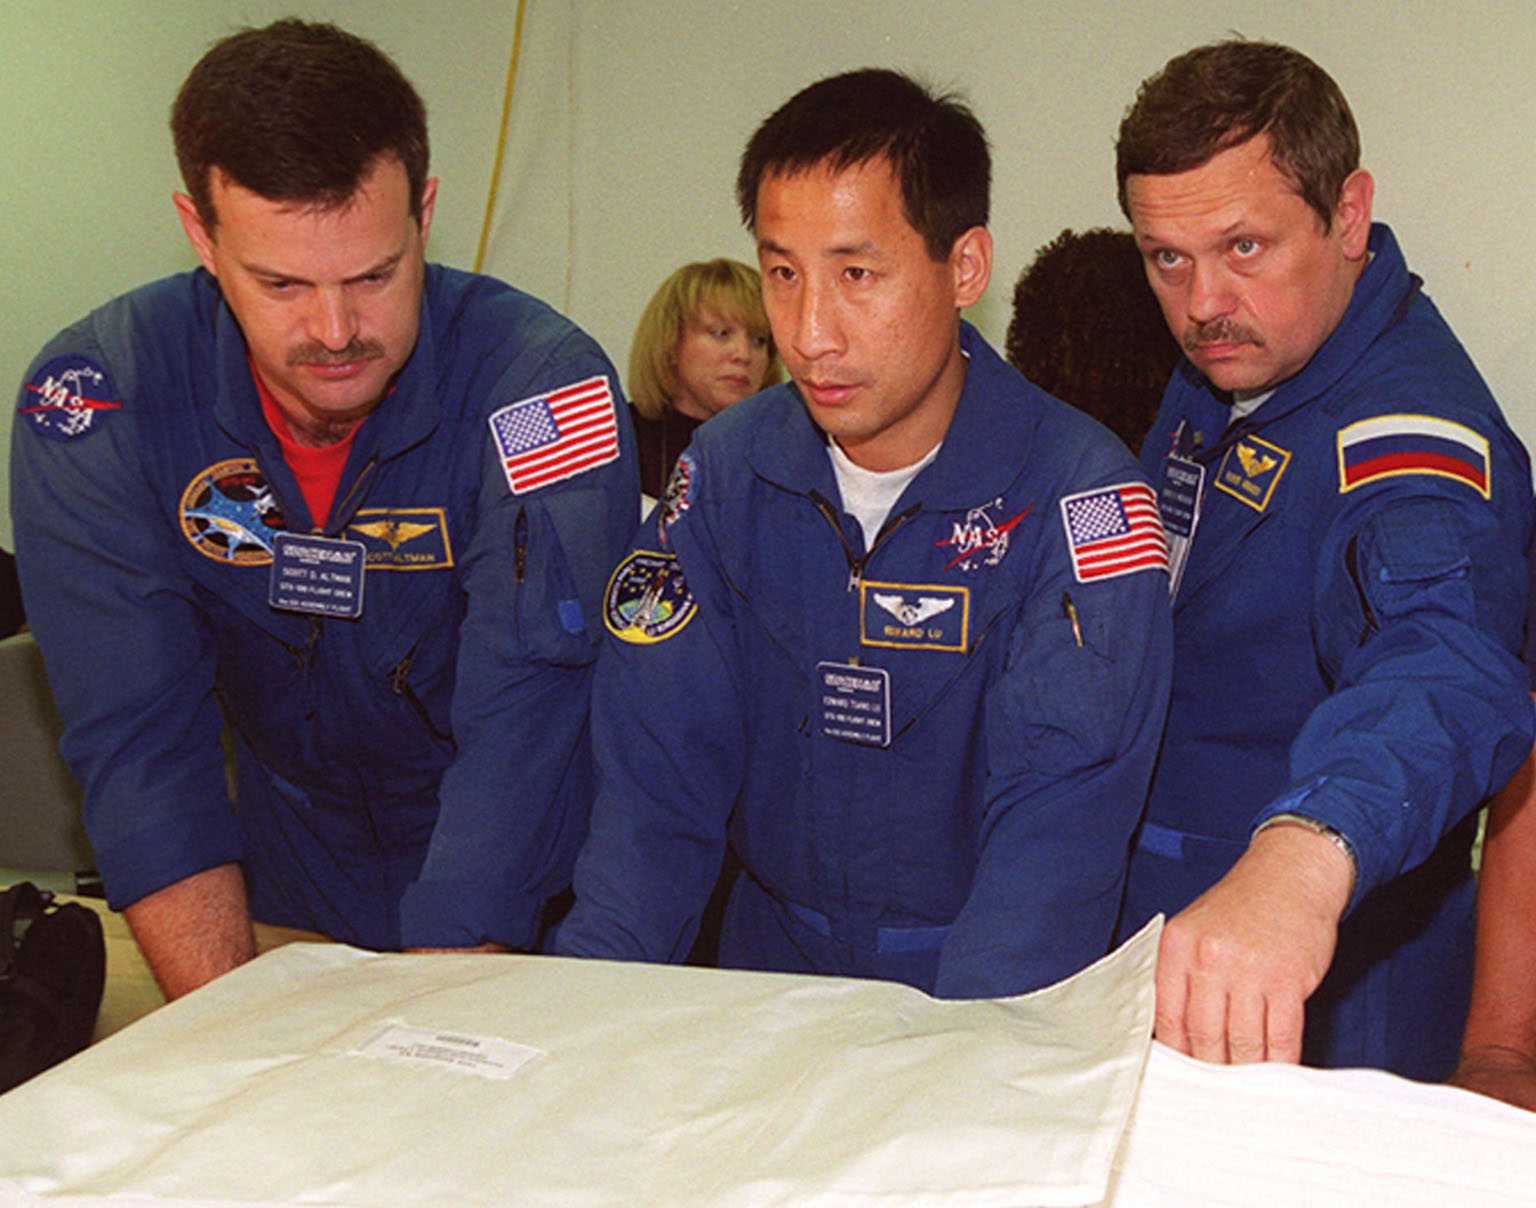 KENNEDY SPACE CENTER, FLA. -- At SPACEHAB, Port Canaveral, Fla., members of the STS-106 crew become familiar with part of the payload on their mission to the International Space Station. From left are Pilot Scott Altman and Mission Specialists Edward Lu and Boris Morukov, who is with the Russian Space Agency. Among the payload is the Treadmill Vibration Isolation System (TVIS), a device to collect data on how vibrations imparted by crew exercise may be reduced or eliminated on the International Space Station. Those vibrations could disturb delicate microgravity experiments on the Space Station. During the mission, the crew will complete service module support tasks on orbit, transfer supplies and outfit the Space Station for the first long-duration crew. STS-106 is scheduled to launch Sept. 8